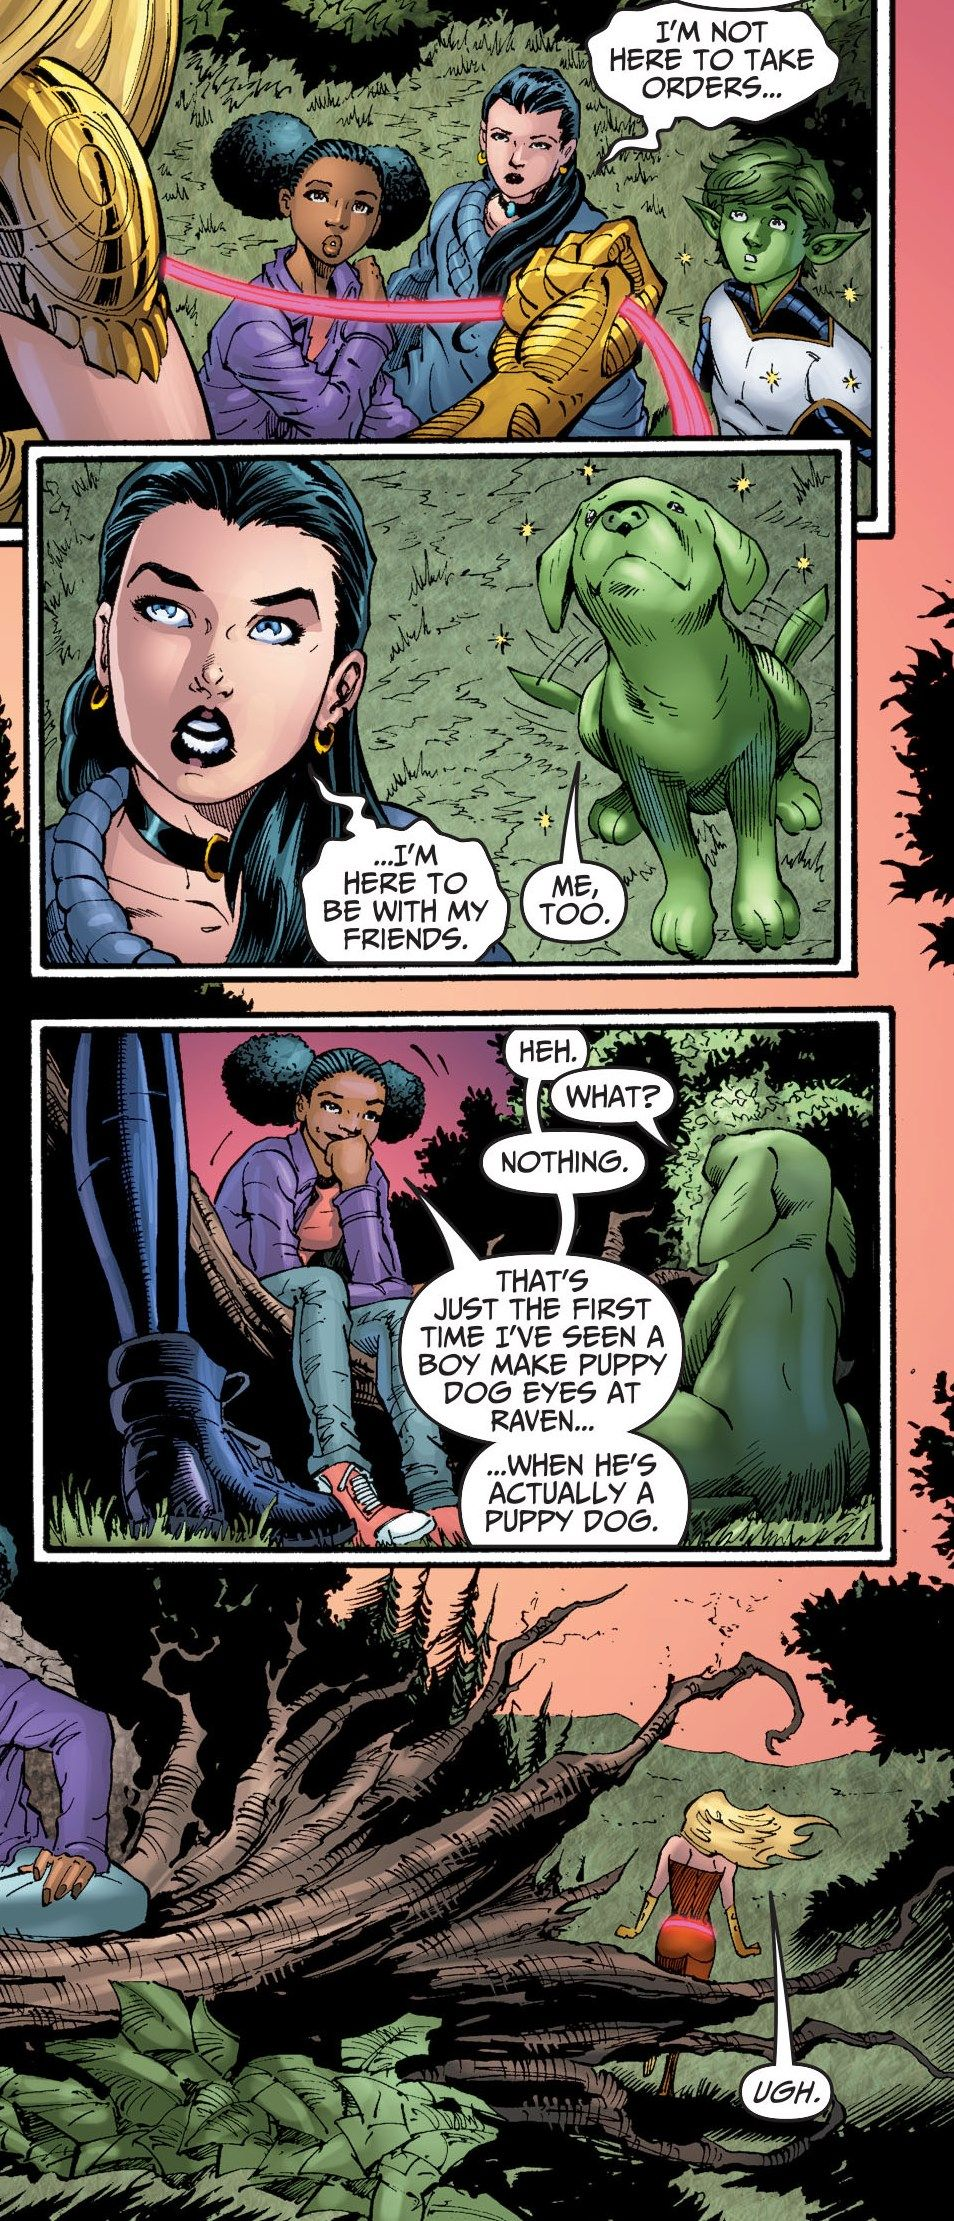 beastboy and raven relationship in comics wolverines